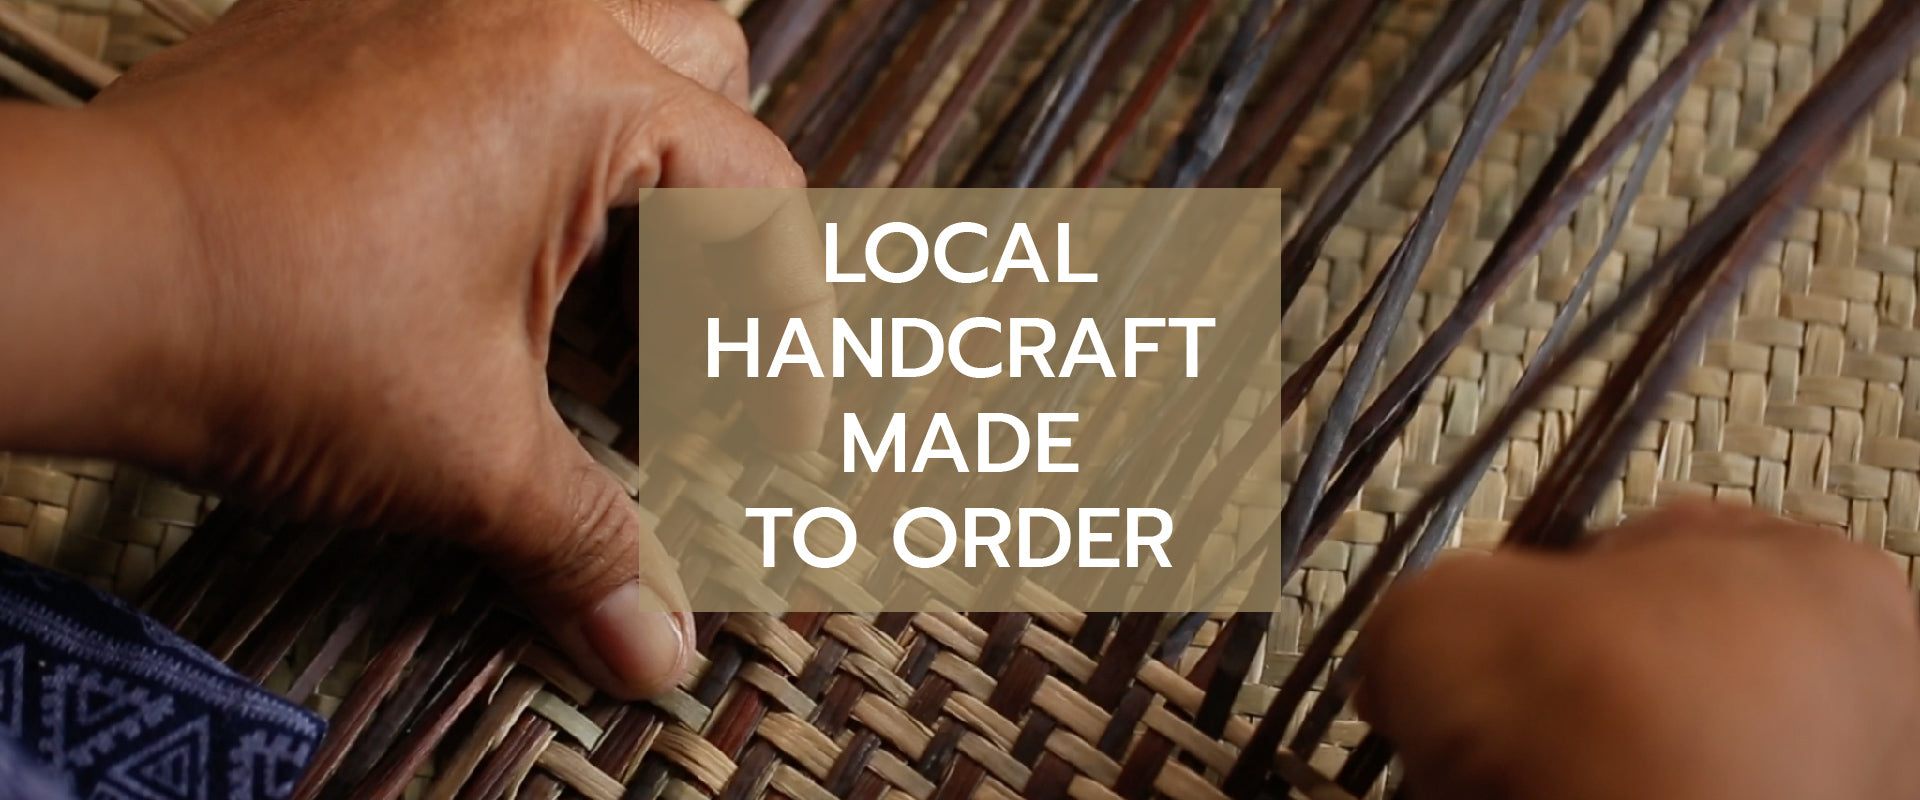 local hand craft made to order